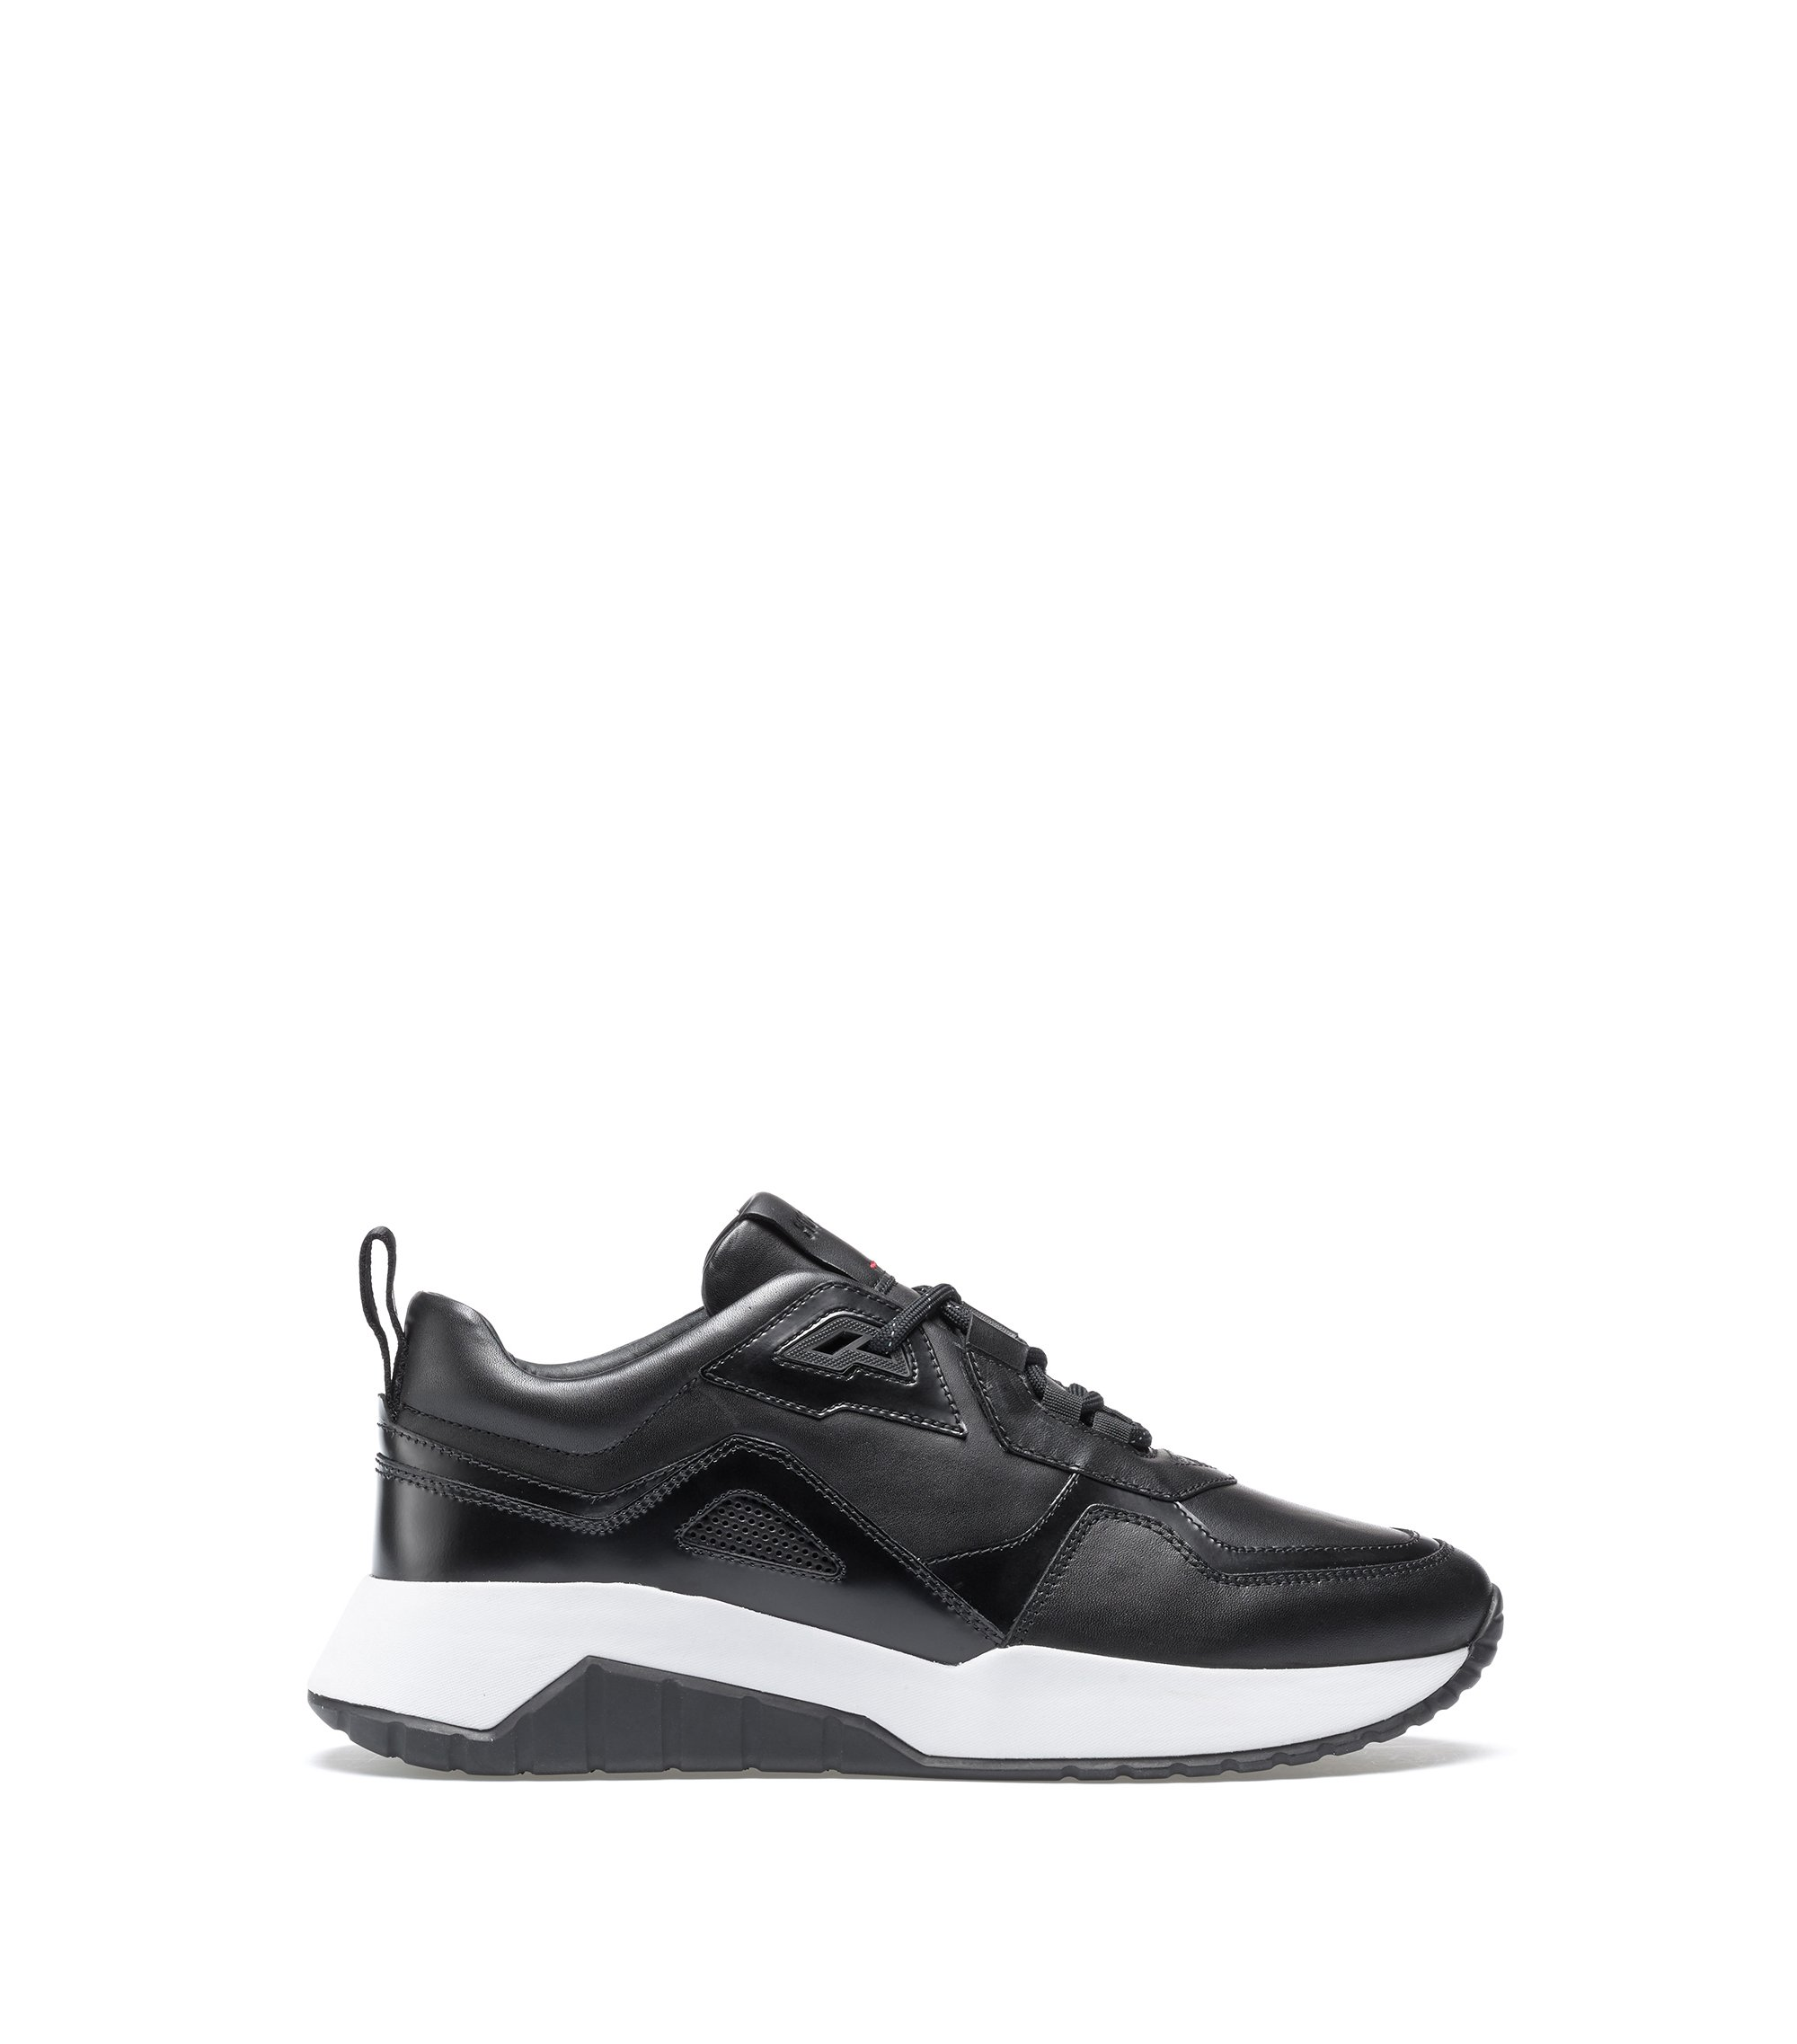 Lace-up trainers in leather with perforated details, Black